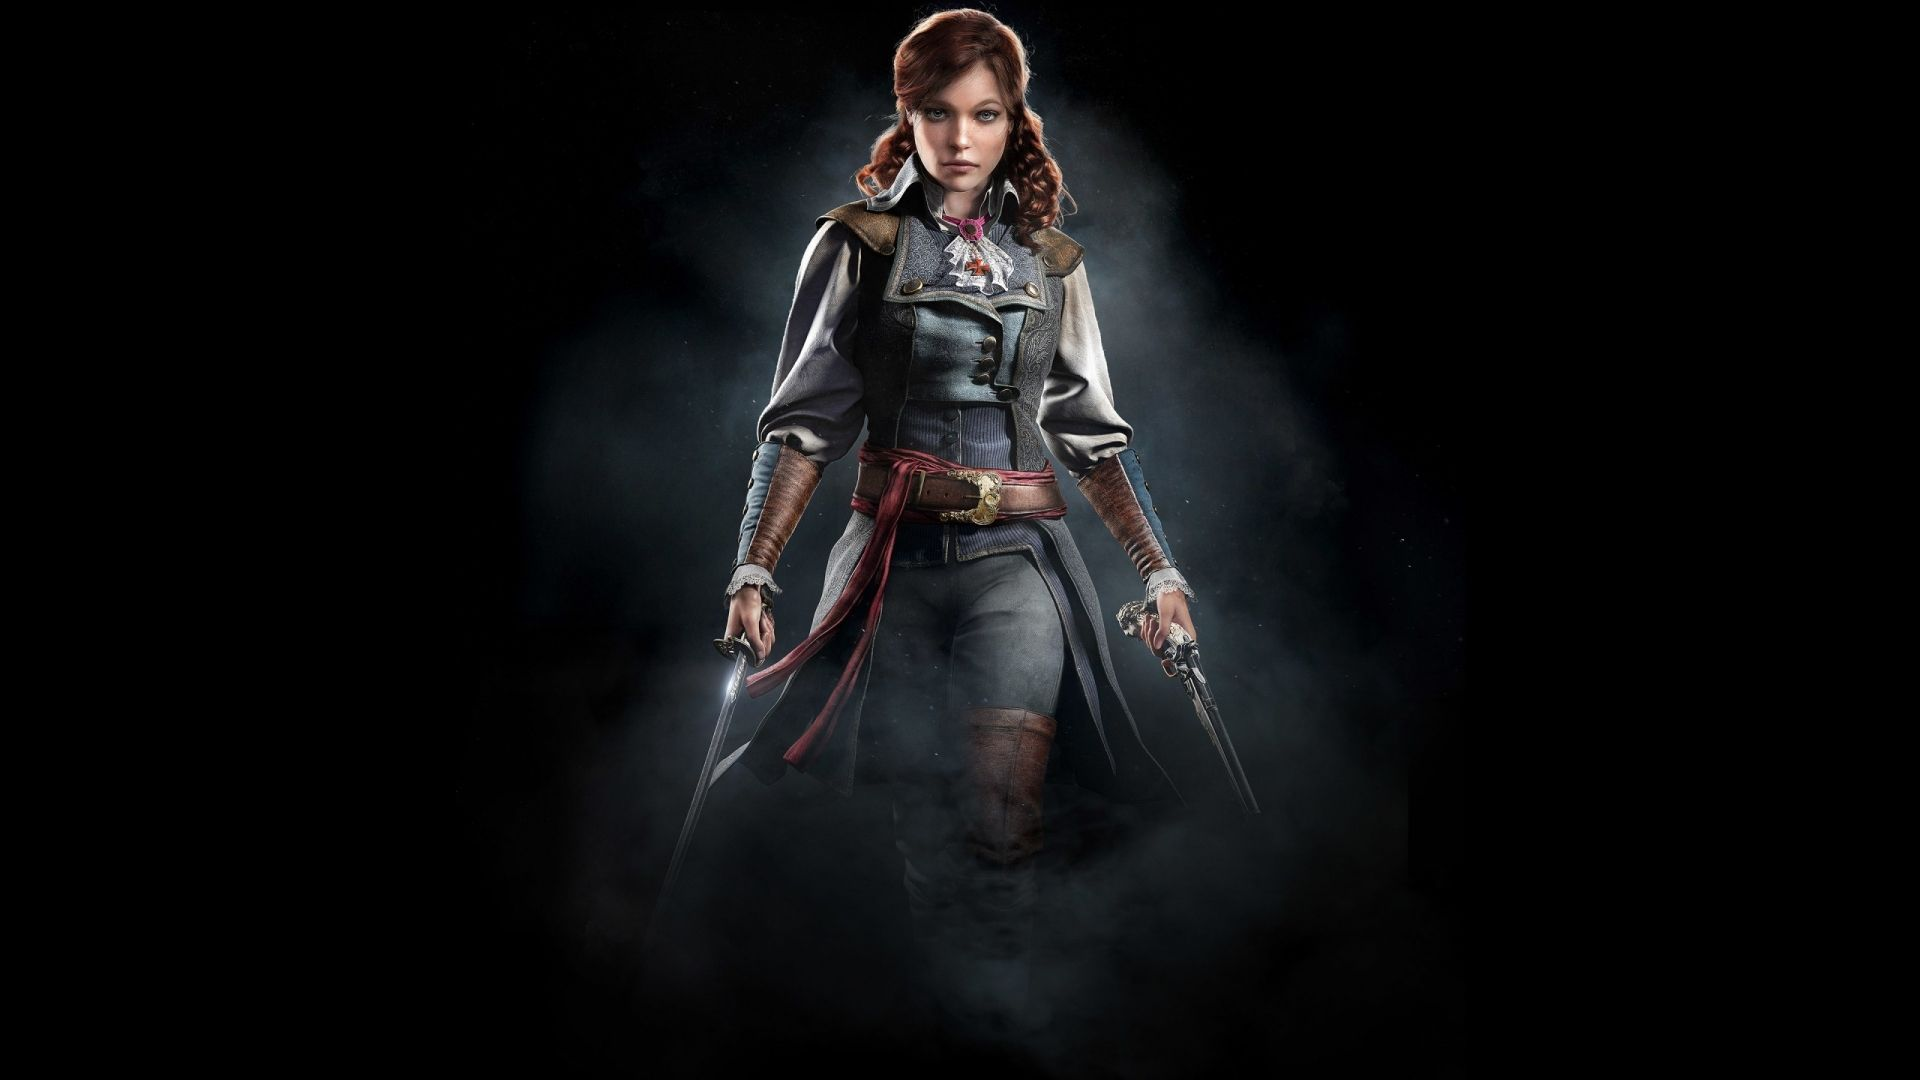 Female Assassin Wallpapers Top Free Female Assassin Backgrounds